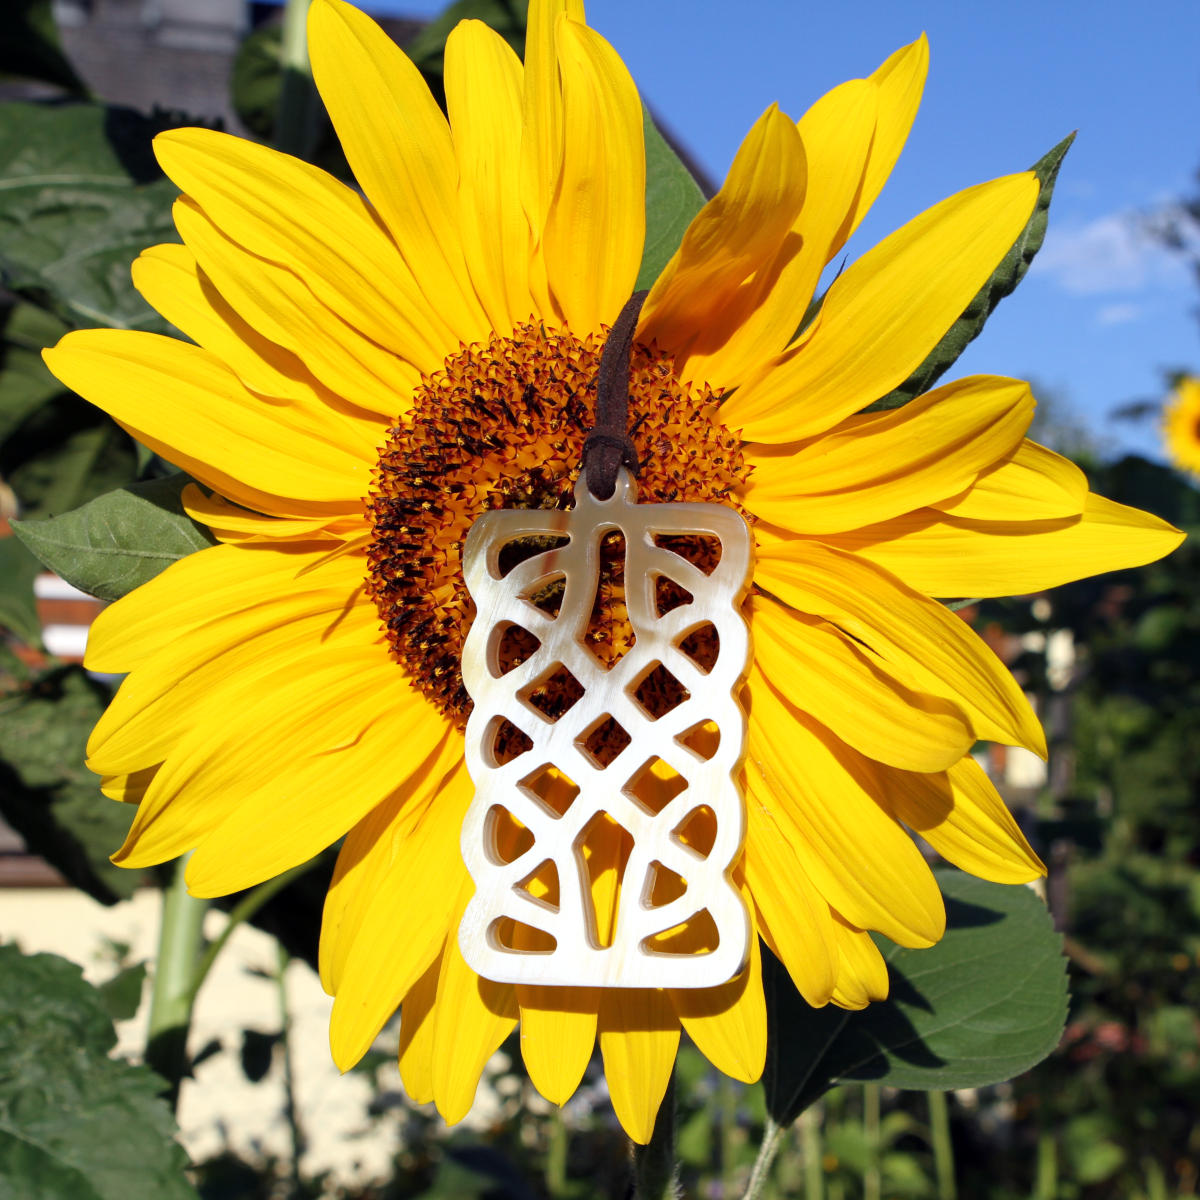 Celtic knot style pendant on a sunflower